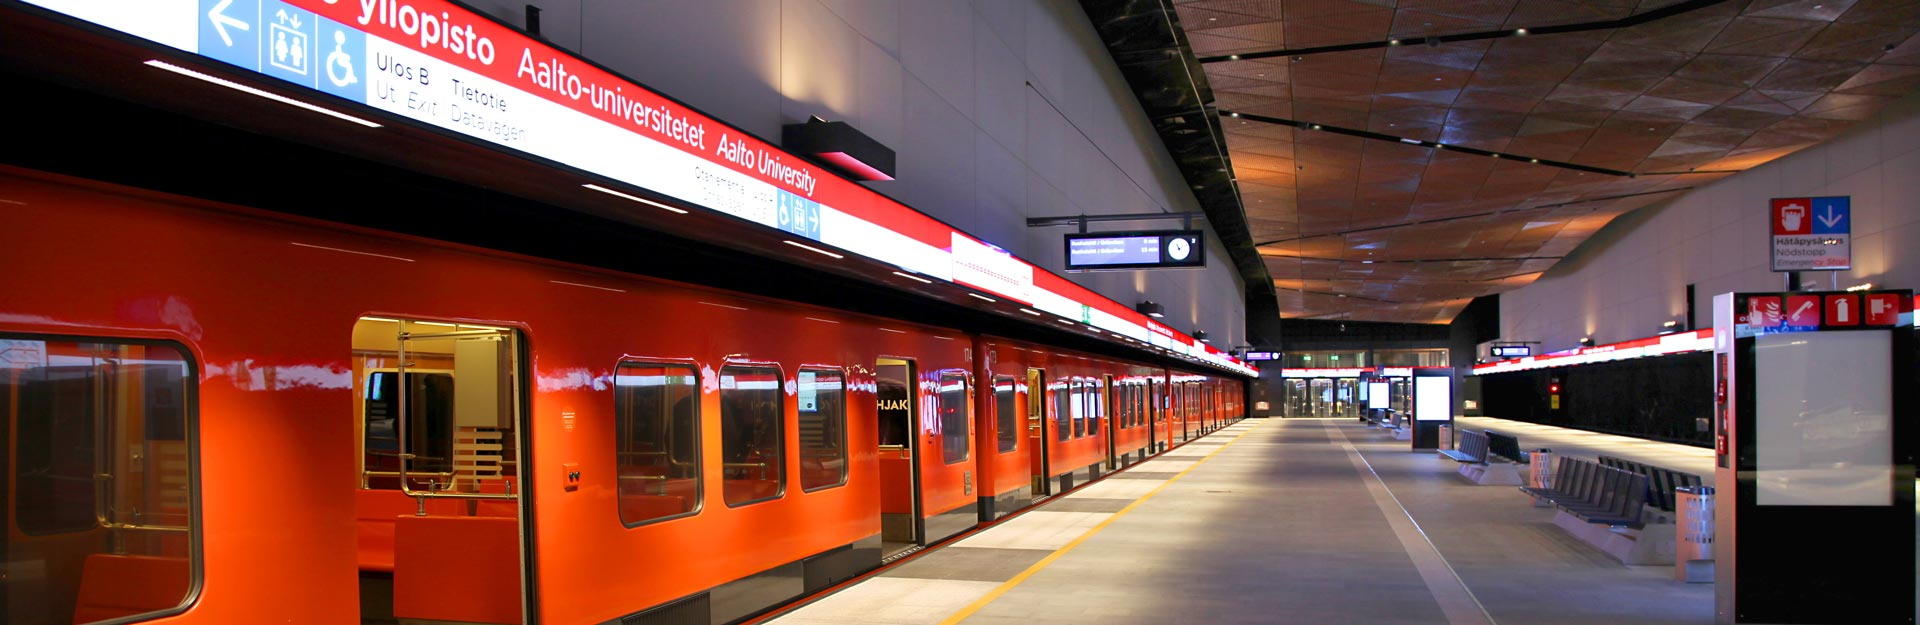 A metro standing at the Aalto University station.